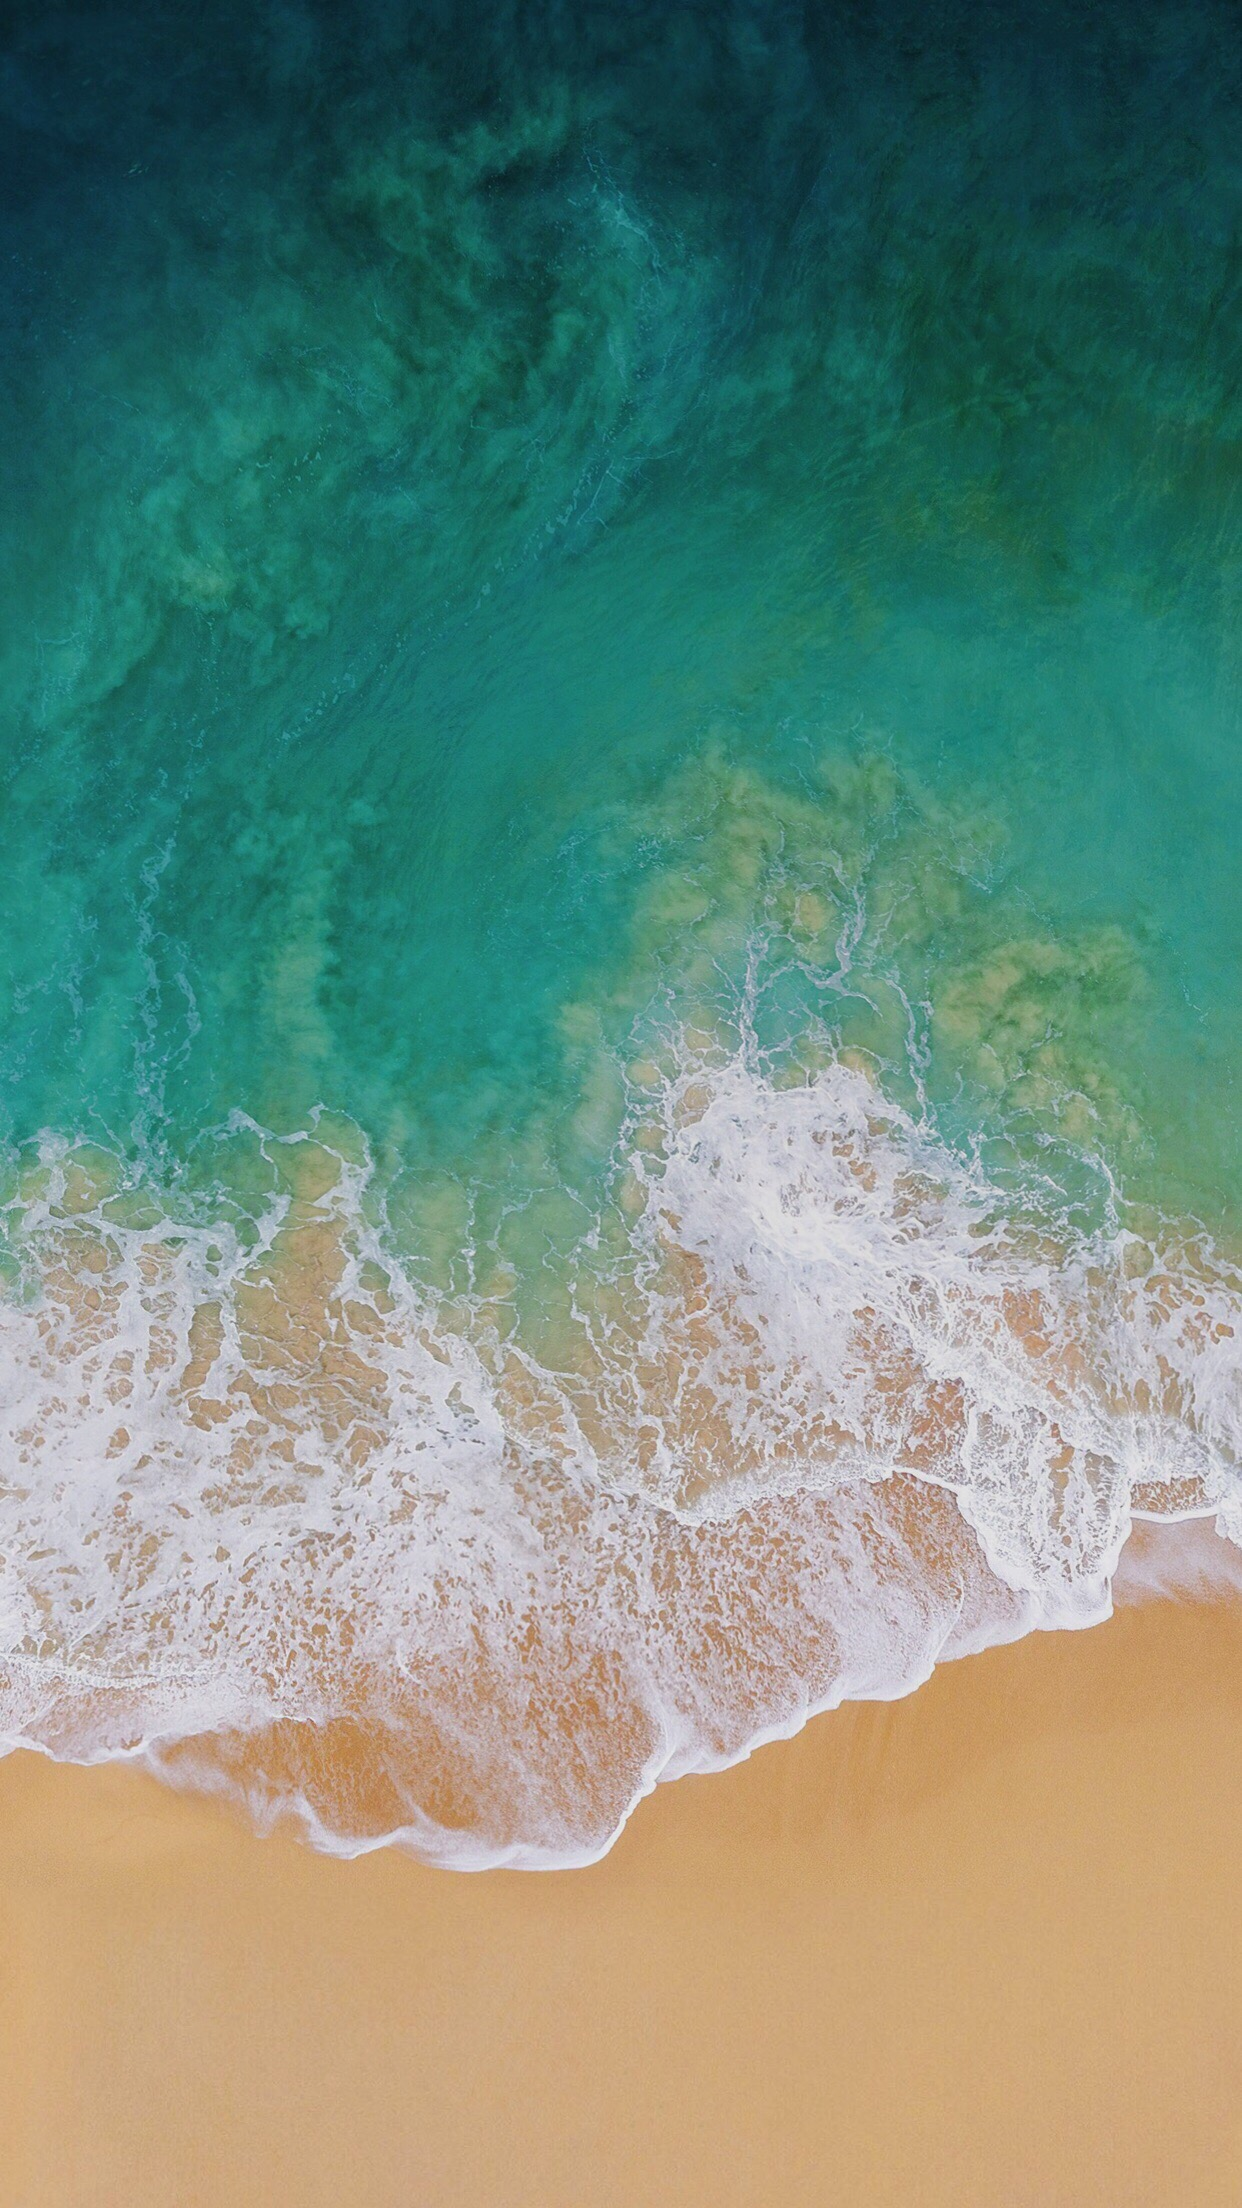 iphone default wallpaper ios 11 macos high imac pro wallpapers from wwdc 2017 6738